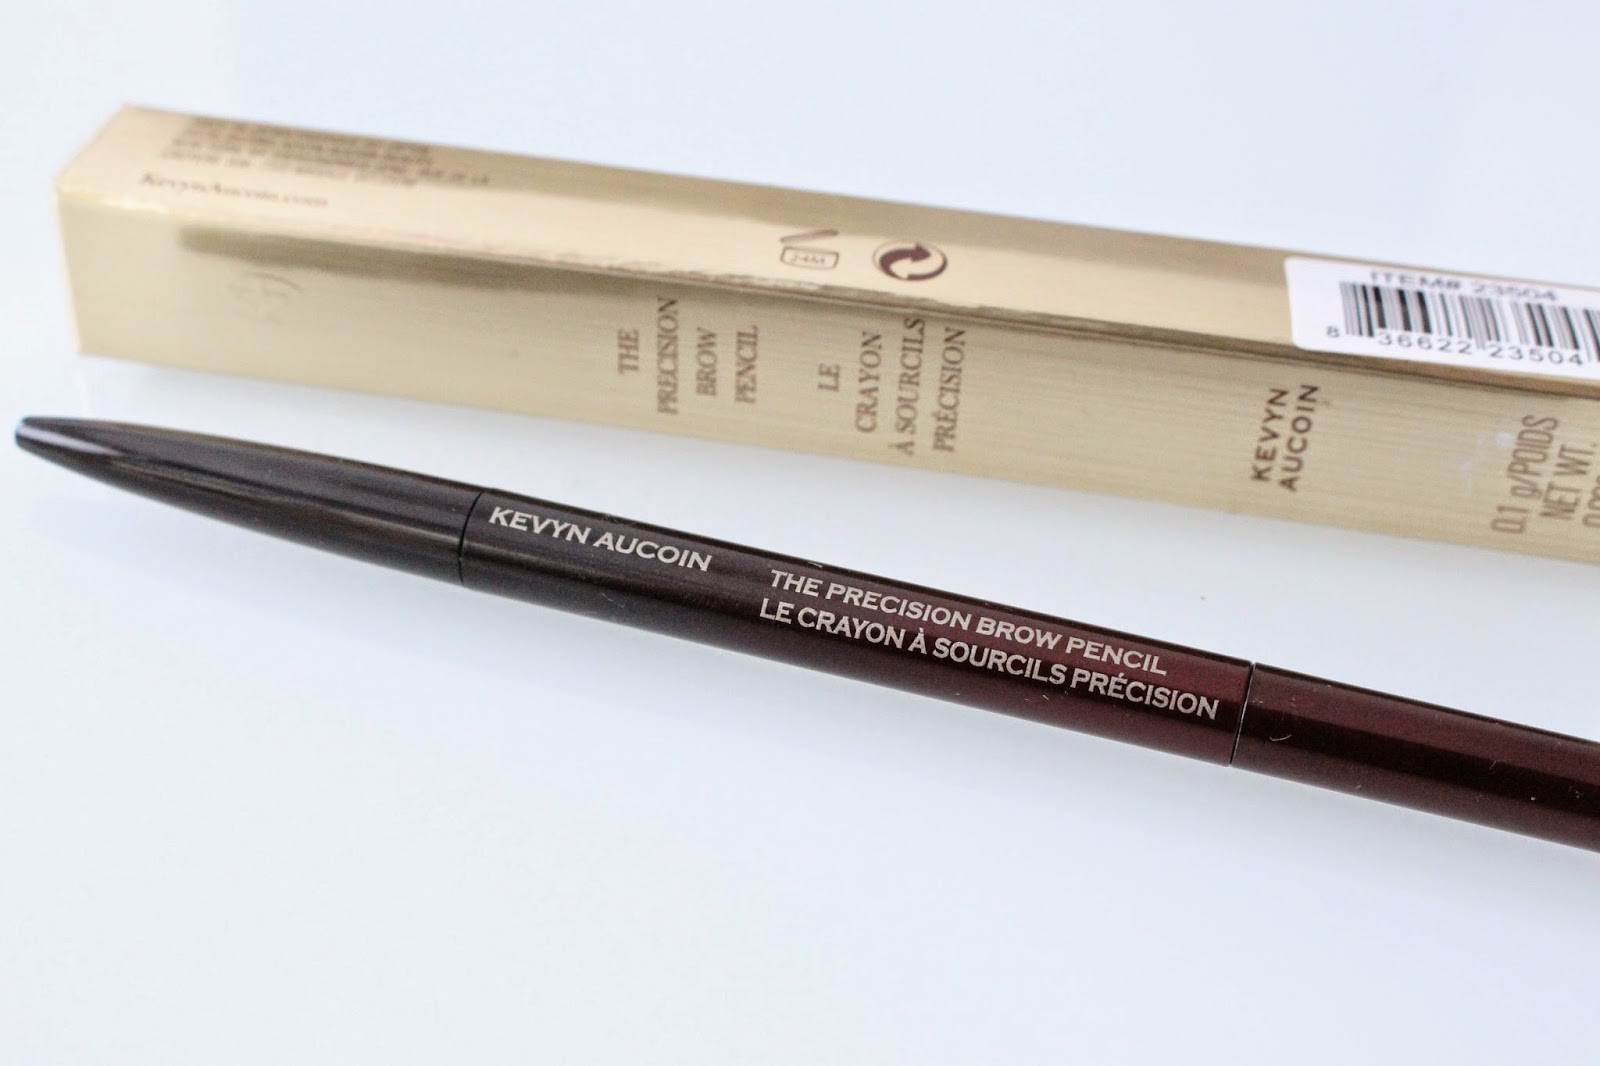 Review The Precision Brow Pencil de Kevyn Aucoin